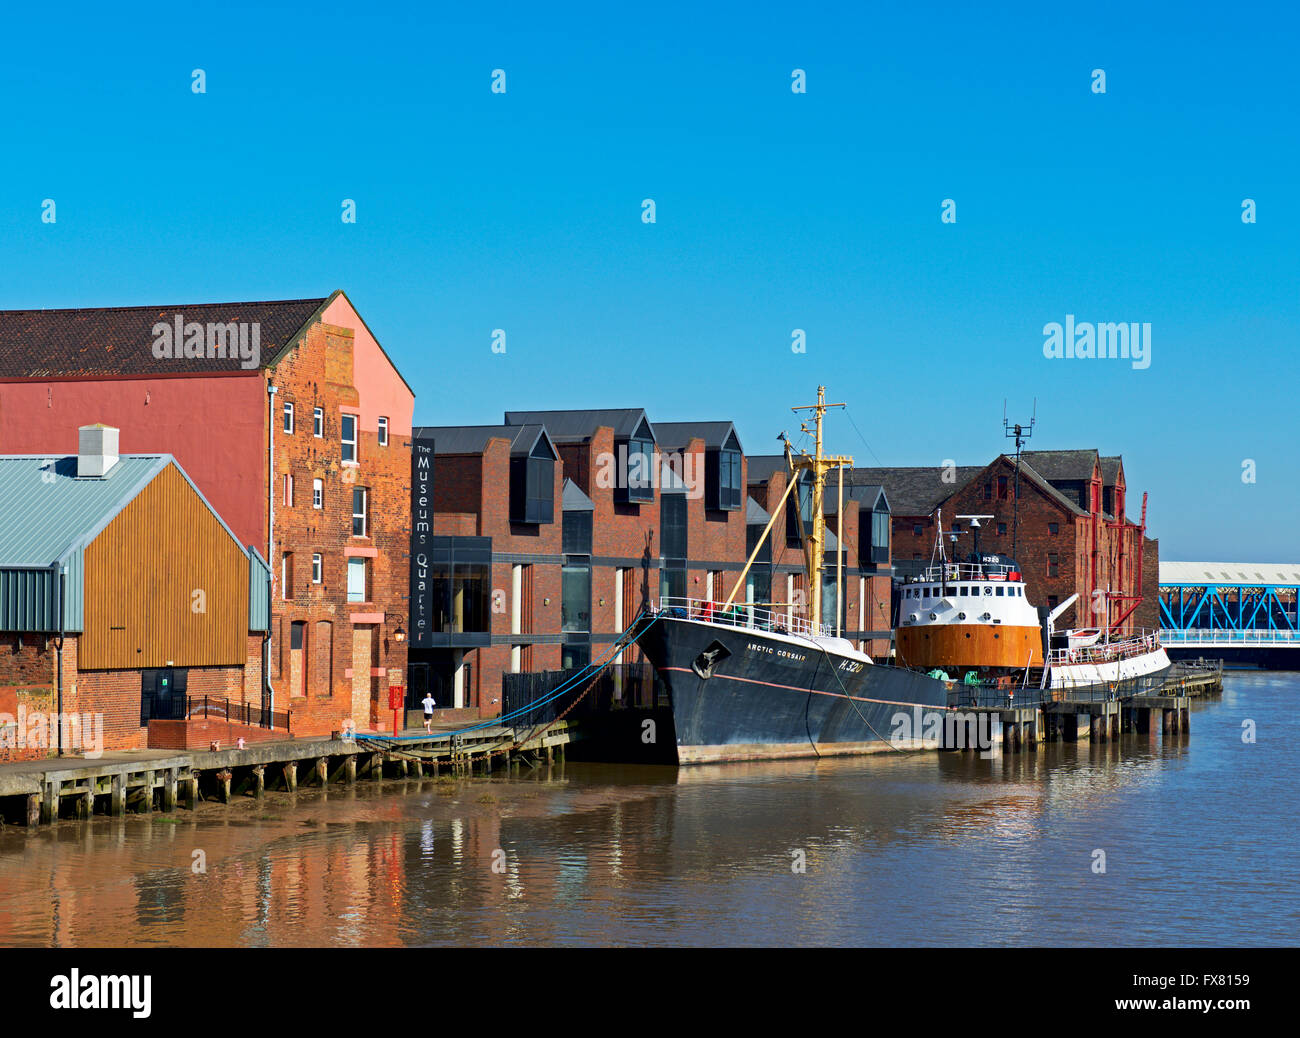 Warehouses in the Museum Quarter, overlooking the River Hull, Kingston upon Hull, Humberside, East Yorkshire, England - Stock Image